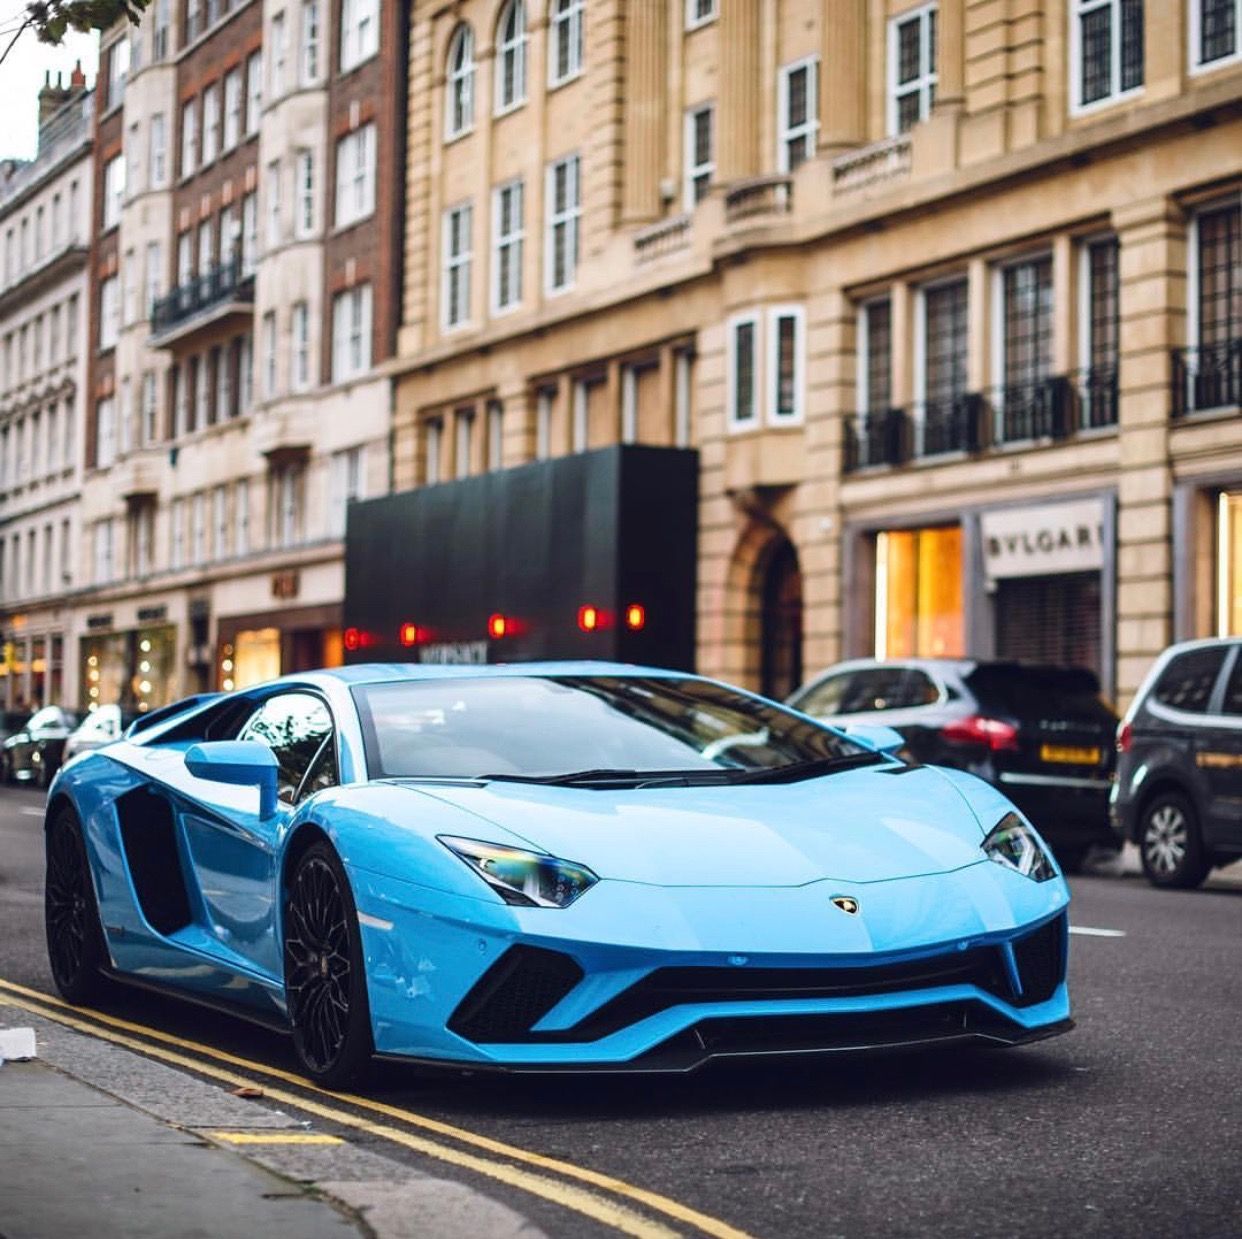 Bon Lamborghini Aventador S Painted In Blu Cepheus Photo Taken By: @tfjj On  Instagram · Sports Car PhotosLux ...